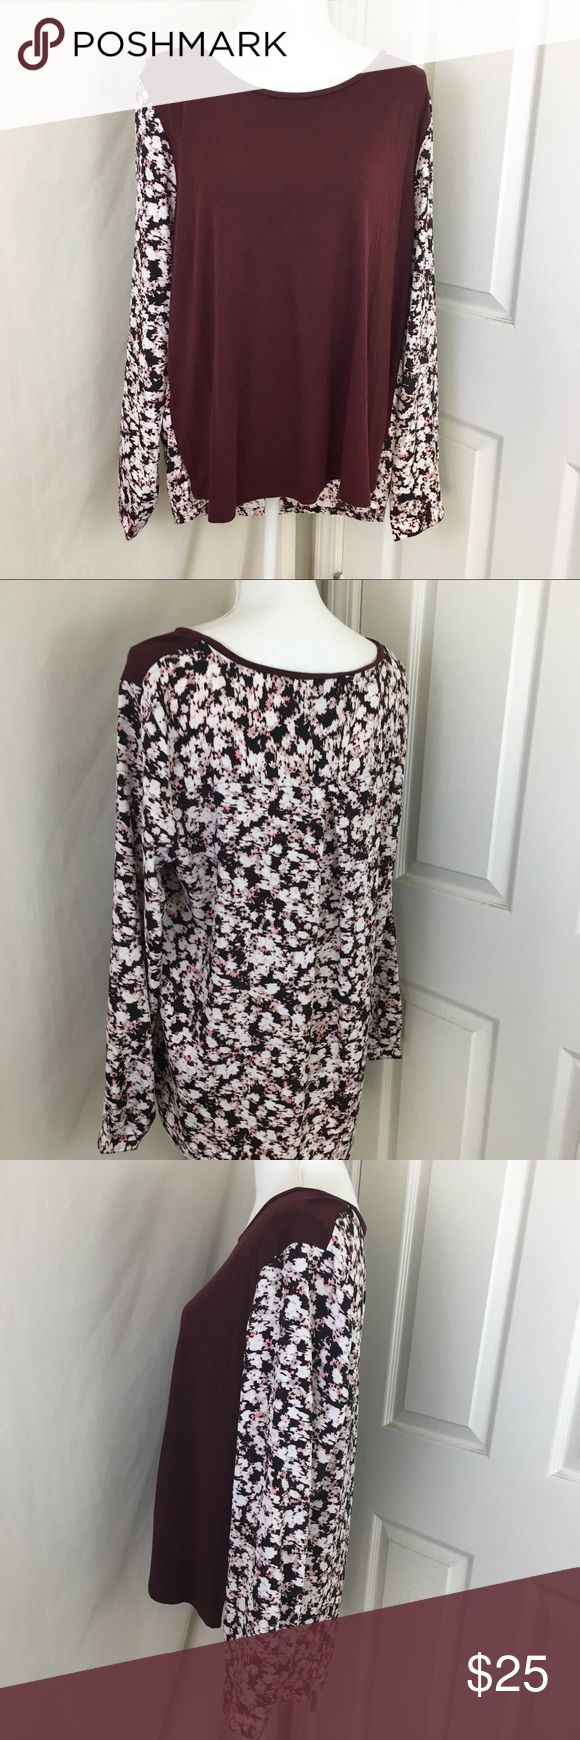 Ann Taylor | Burgundy & Floral Long Sleeve Top Excellent condition, like new! Ann Taylor. Burgundy & Floral Long Sleeve. Front is soft cotton burgundy —— back & sleeves are floral silk-like polyester.   Size XL    •NWT items are not pre-washed!  •If wrinkled, I will steam and prep before shipment!  •Need more pictures? ASK! ✨ •Fast shipping 📦 •Top rated seller ⭐️⭐️⭐️⭐️⭐️ •Packaged with care 💌 •10% discount on 2+ bundles 🛍 Ann Taylor Tops Blouses